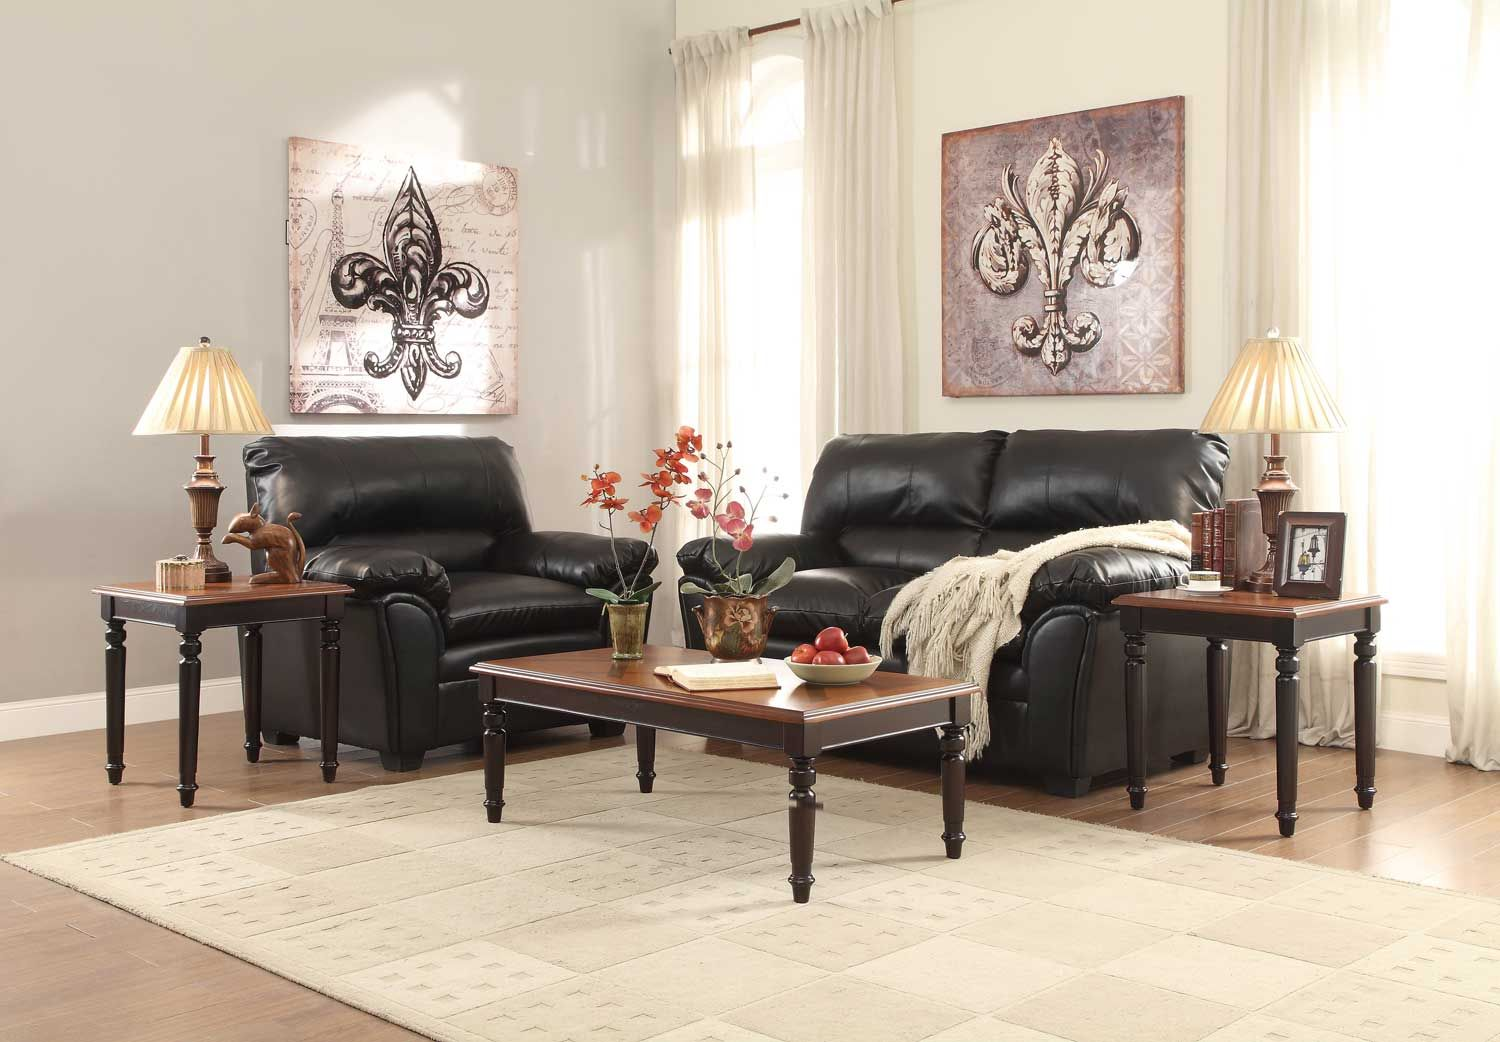 Homelegance Pitman 3-Piece Occasional Tables - Black and Cherry Perfect in your cozy home, the 3-piece Pitman Collection has the country aesthetic that defines your personal style. The traditional turned legs and lattice Inlay Veneer tops are enhanced by the black and cherry Finishes that grace them, respectively.